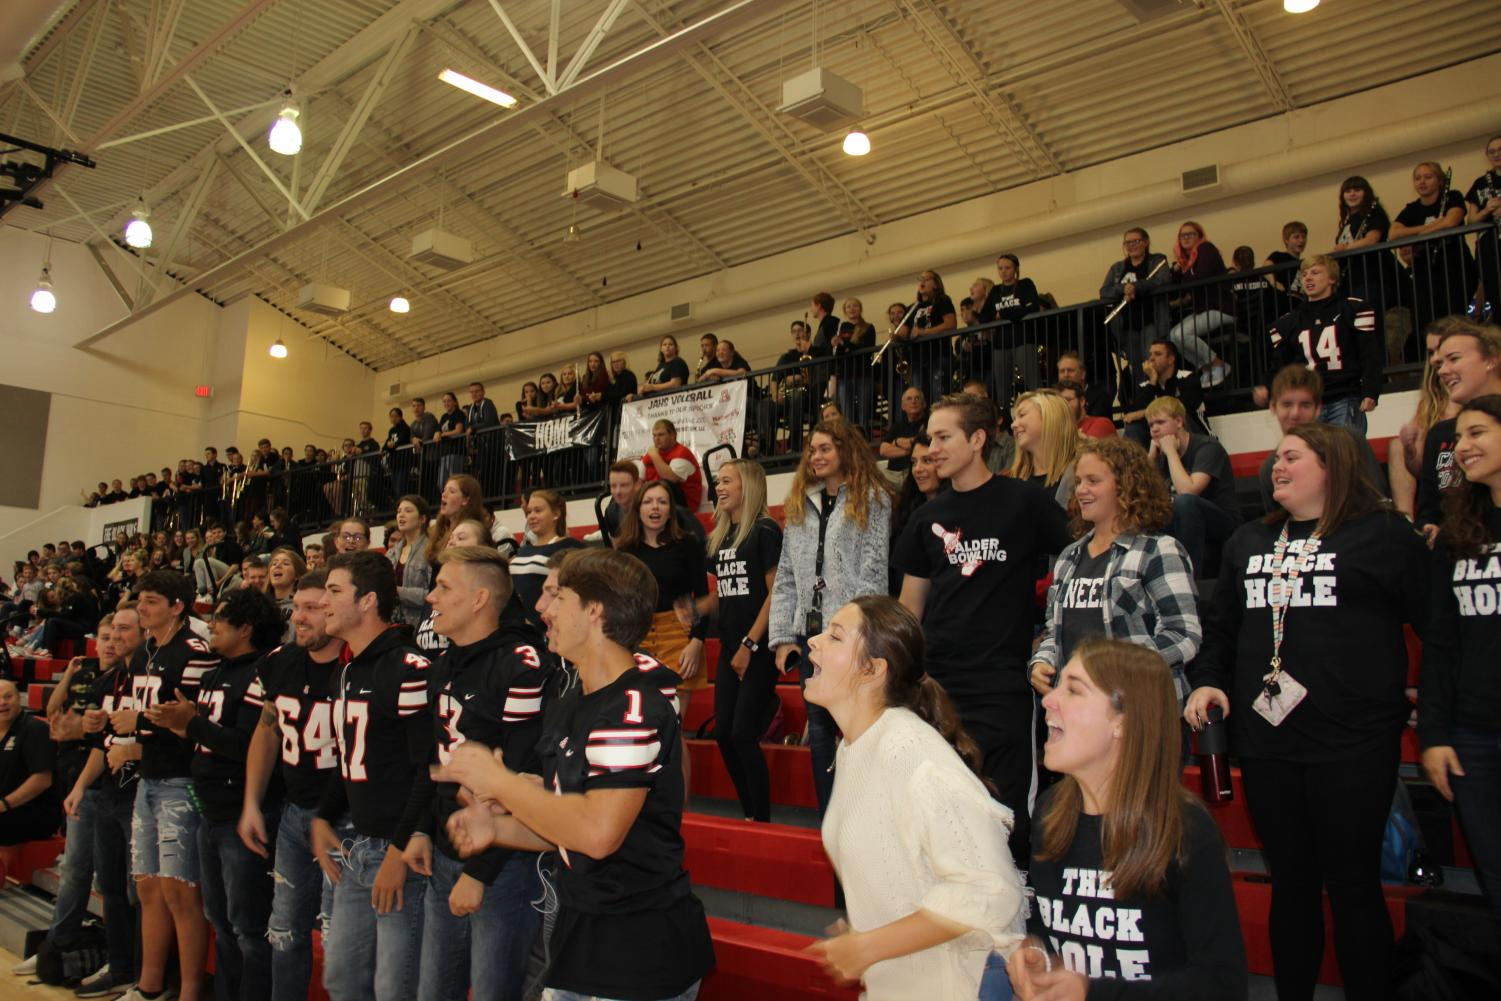 Seniors+cheering+at+the+pep+rally.